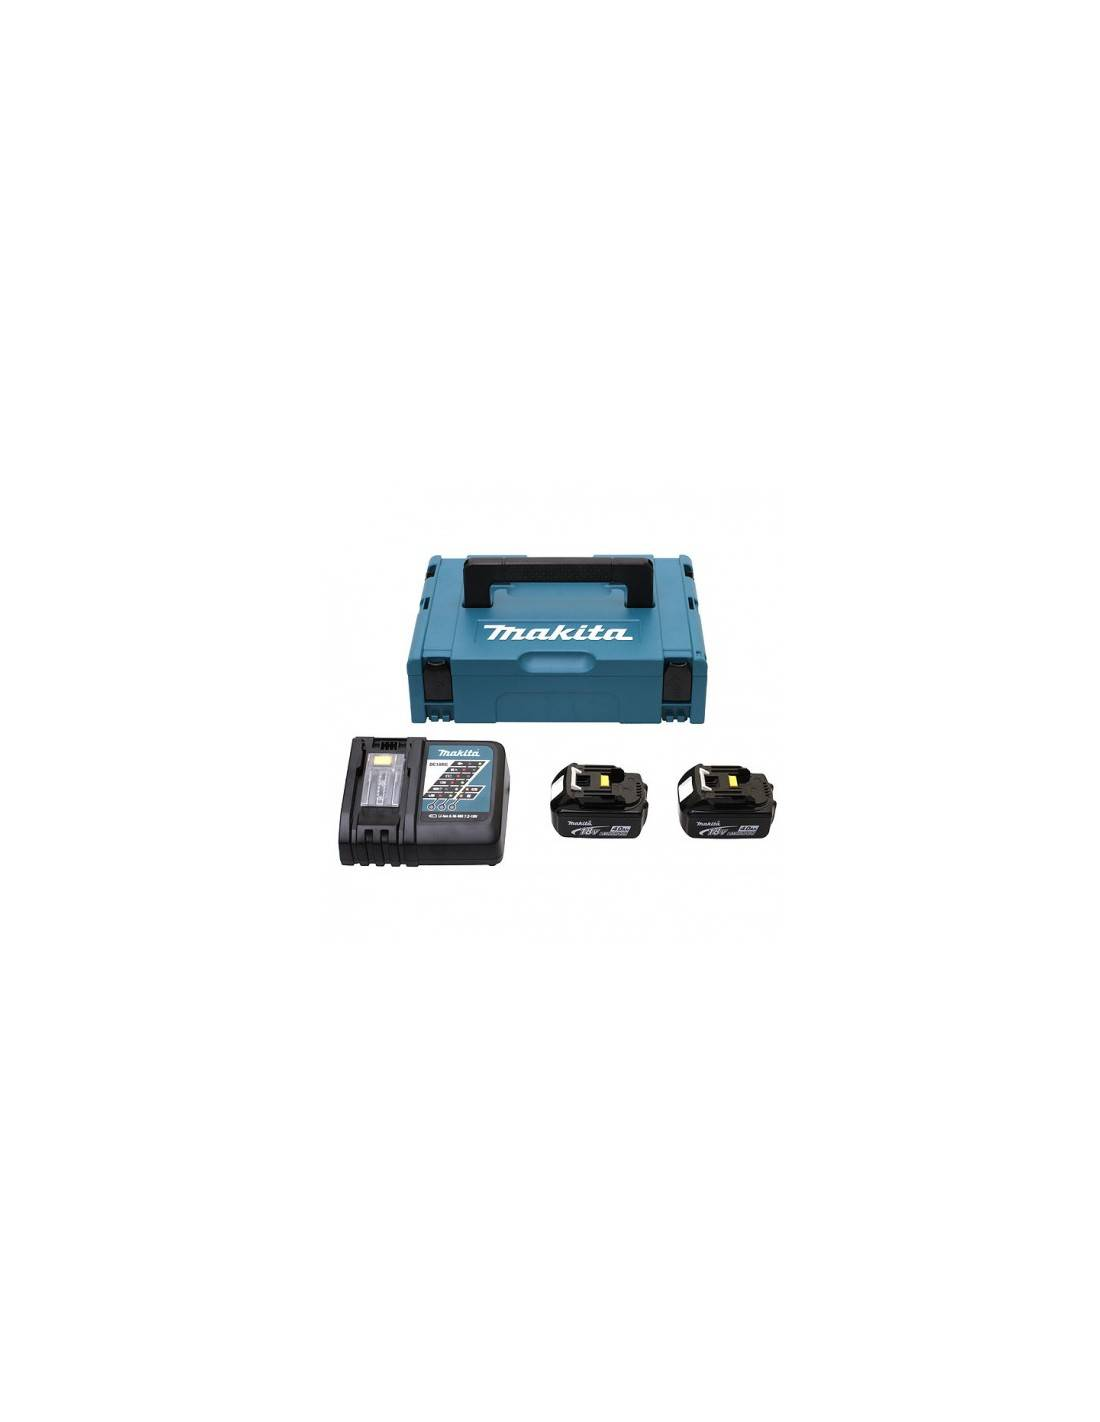 MAKITA - Pack 2 batteries 18V 4Ah et son chargeur double en coffret MAKPAC - 197504-2